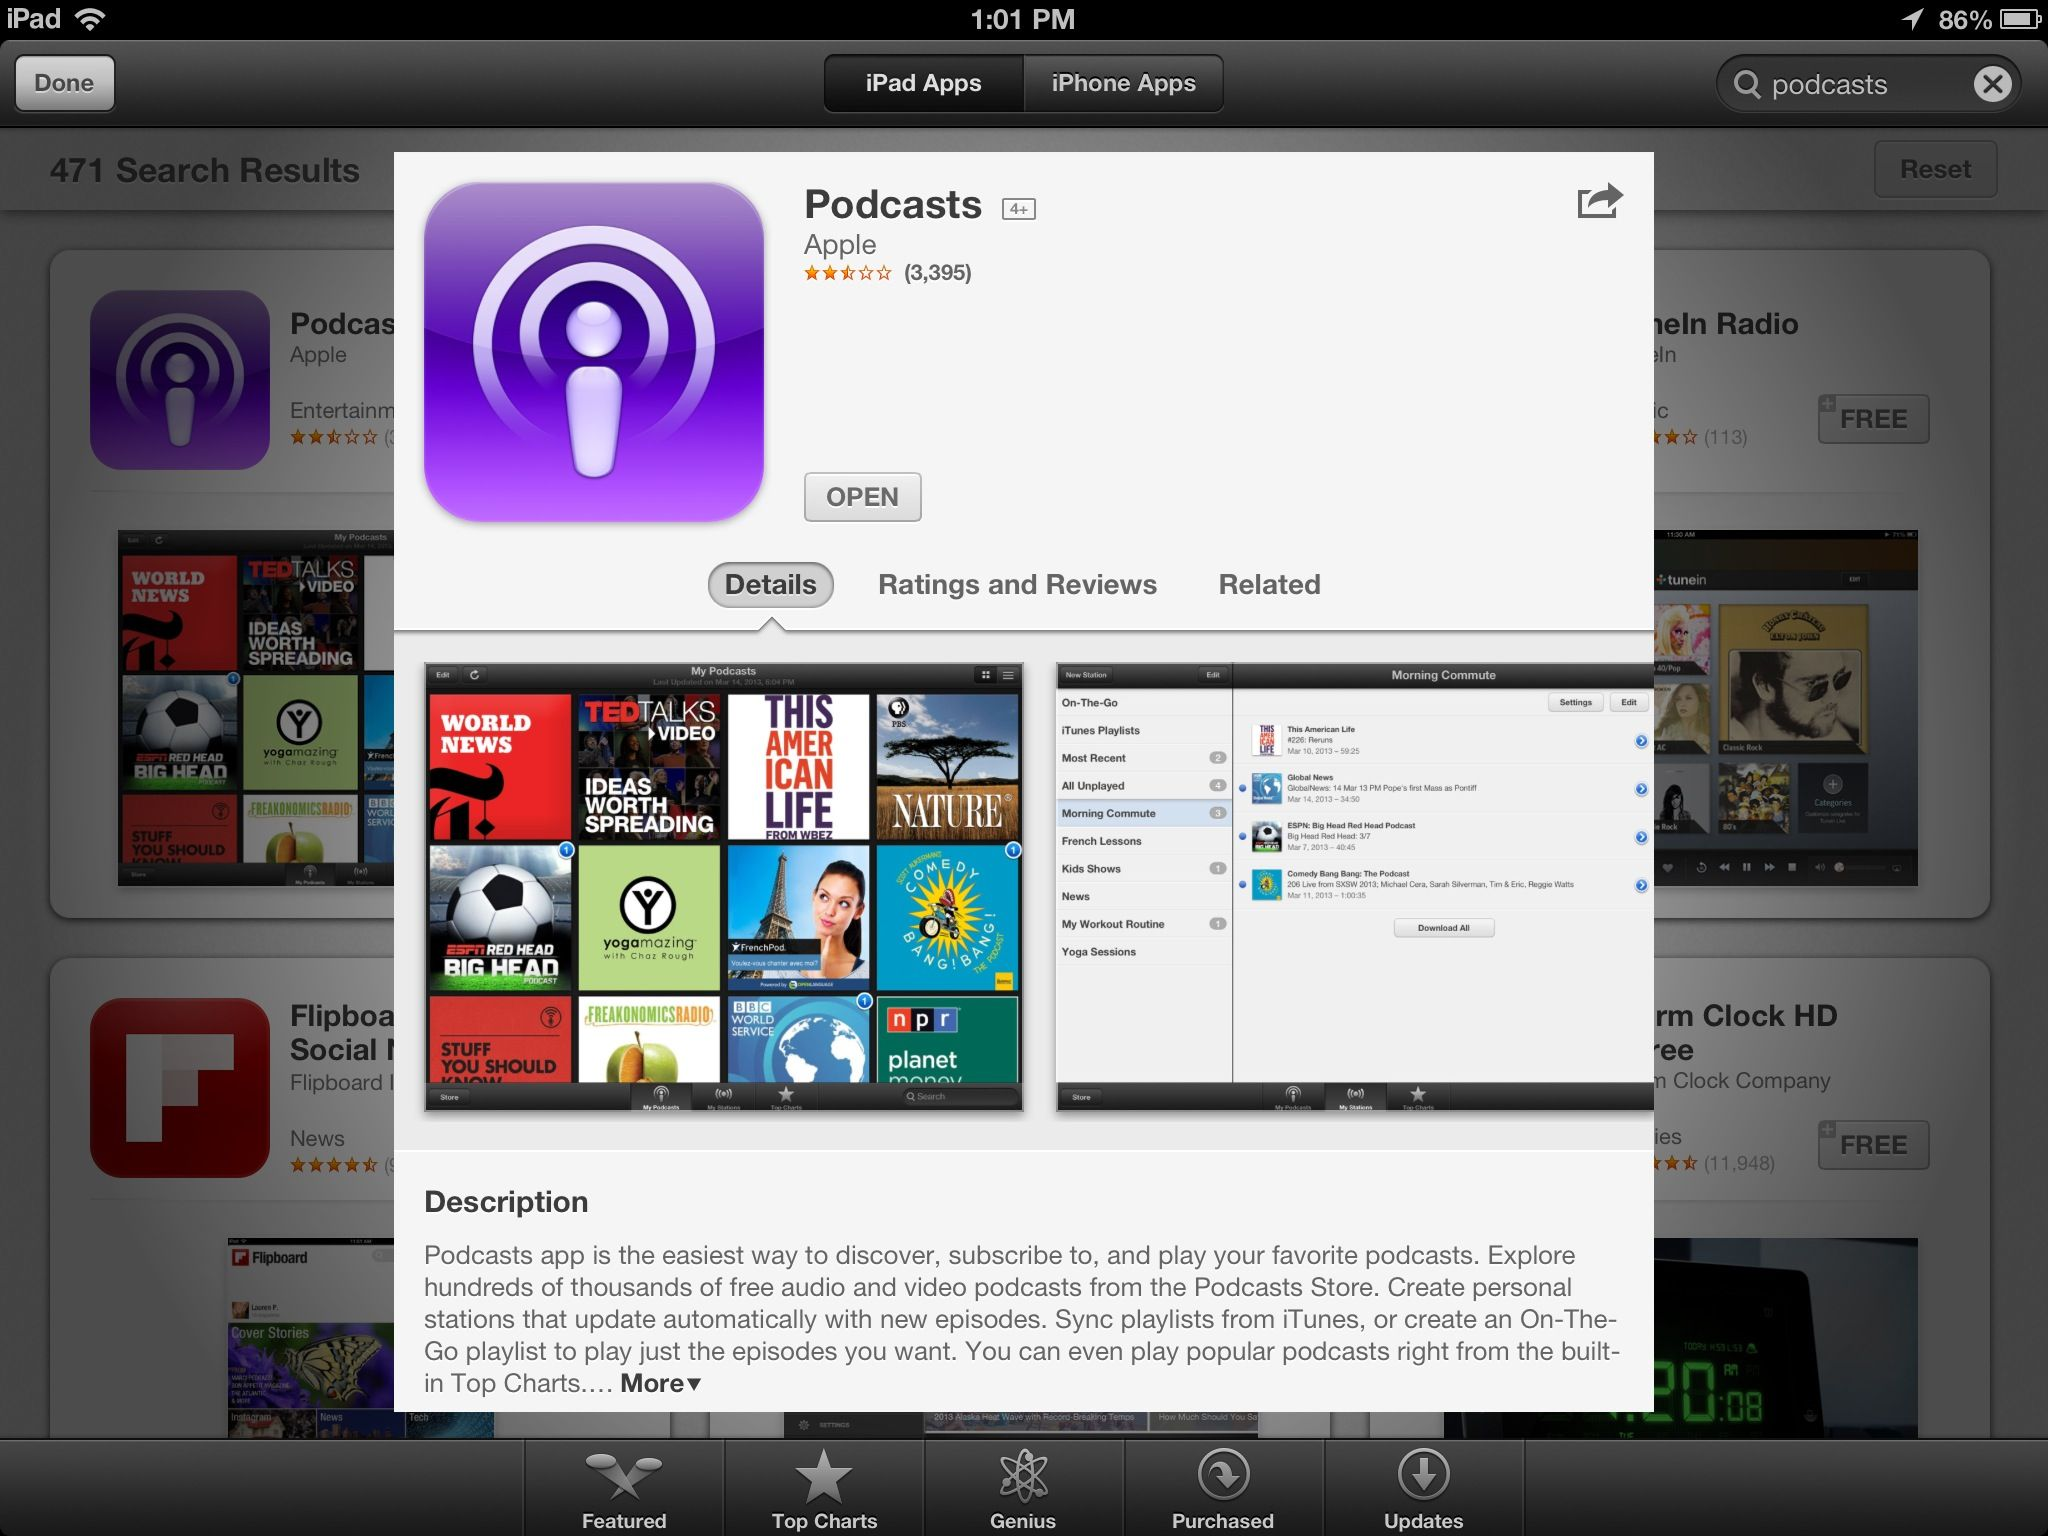 How to Sync Podcasts App With iOS Devices/iTunes (Part 1